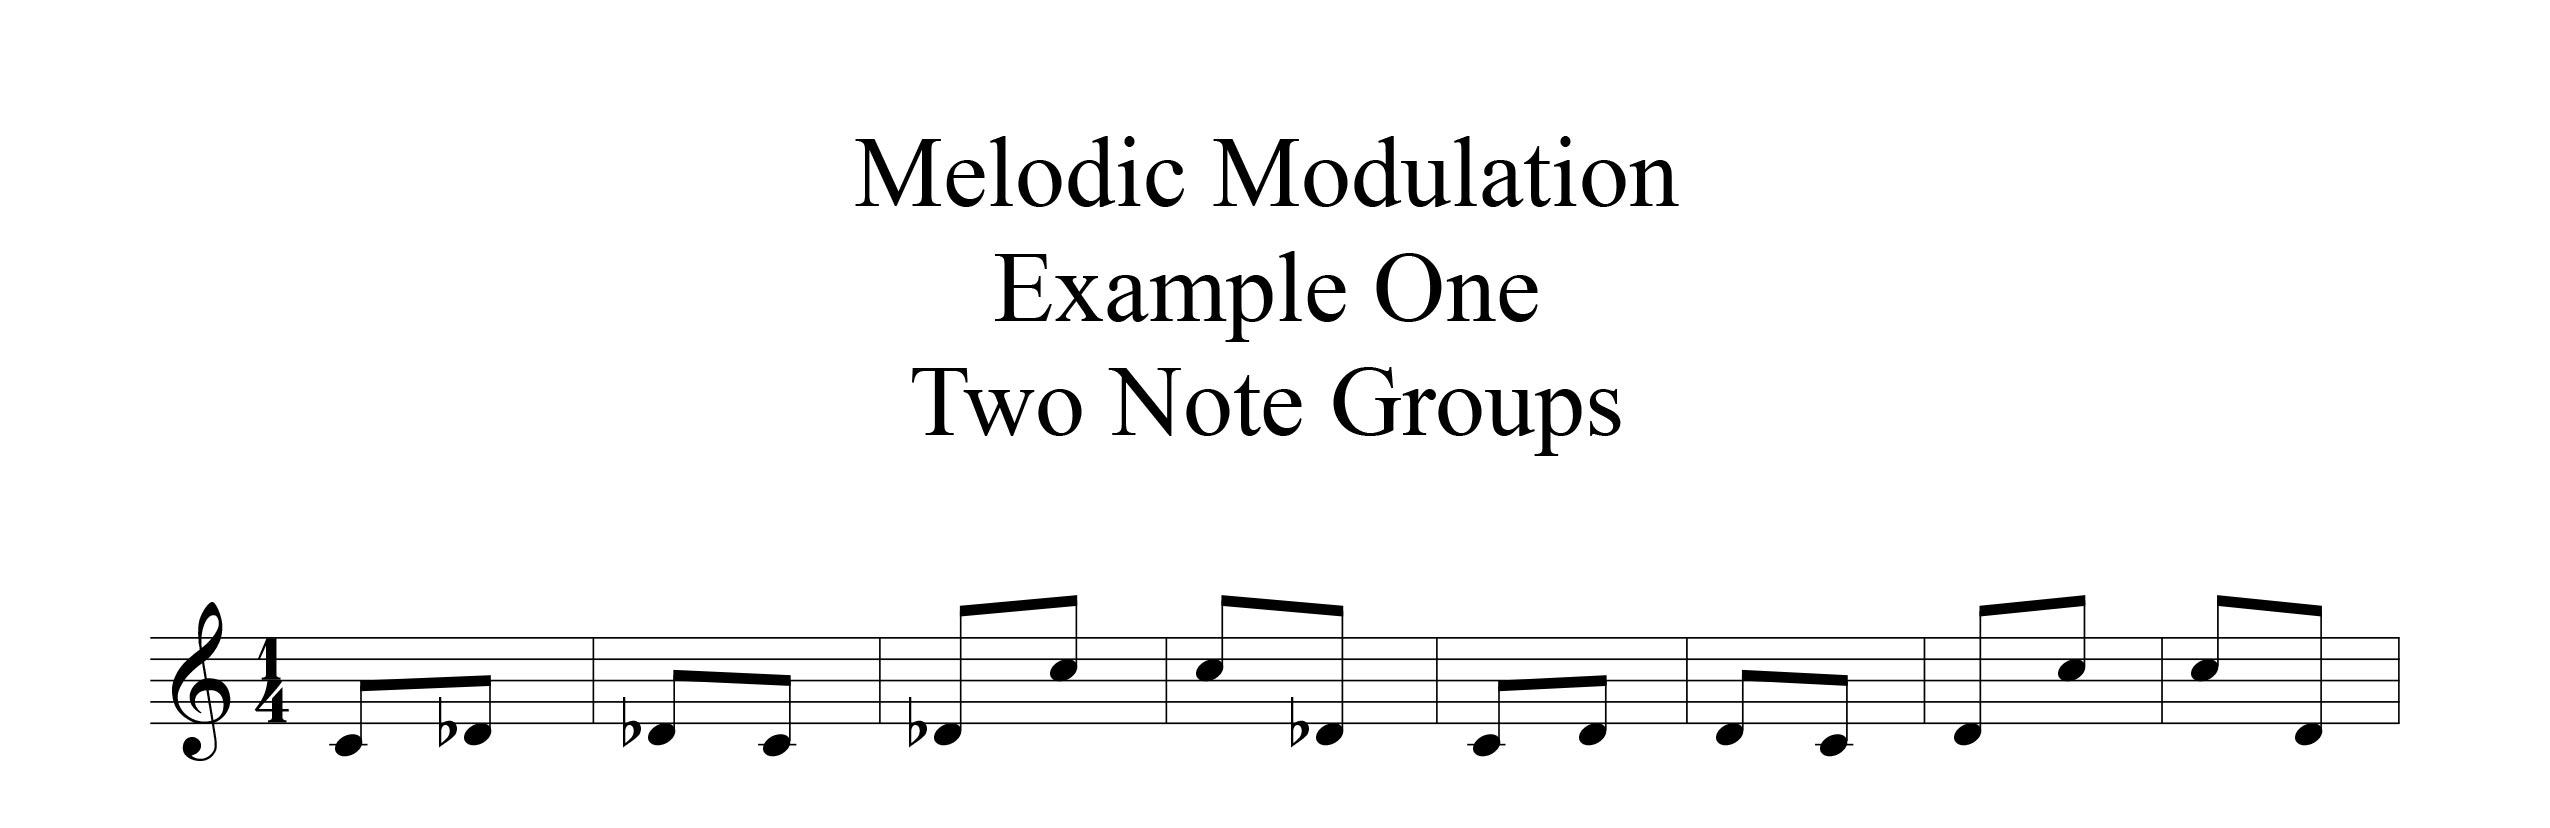 Melodic-Modulation-2-note-groups-Example-one-by-bruce-arnold-for-muse-eek-publishing-inc.